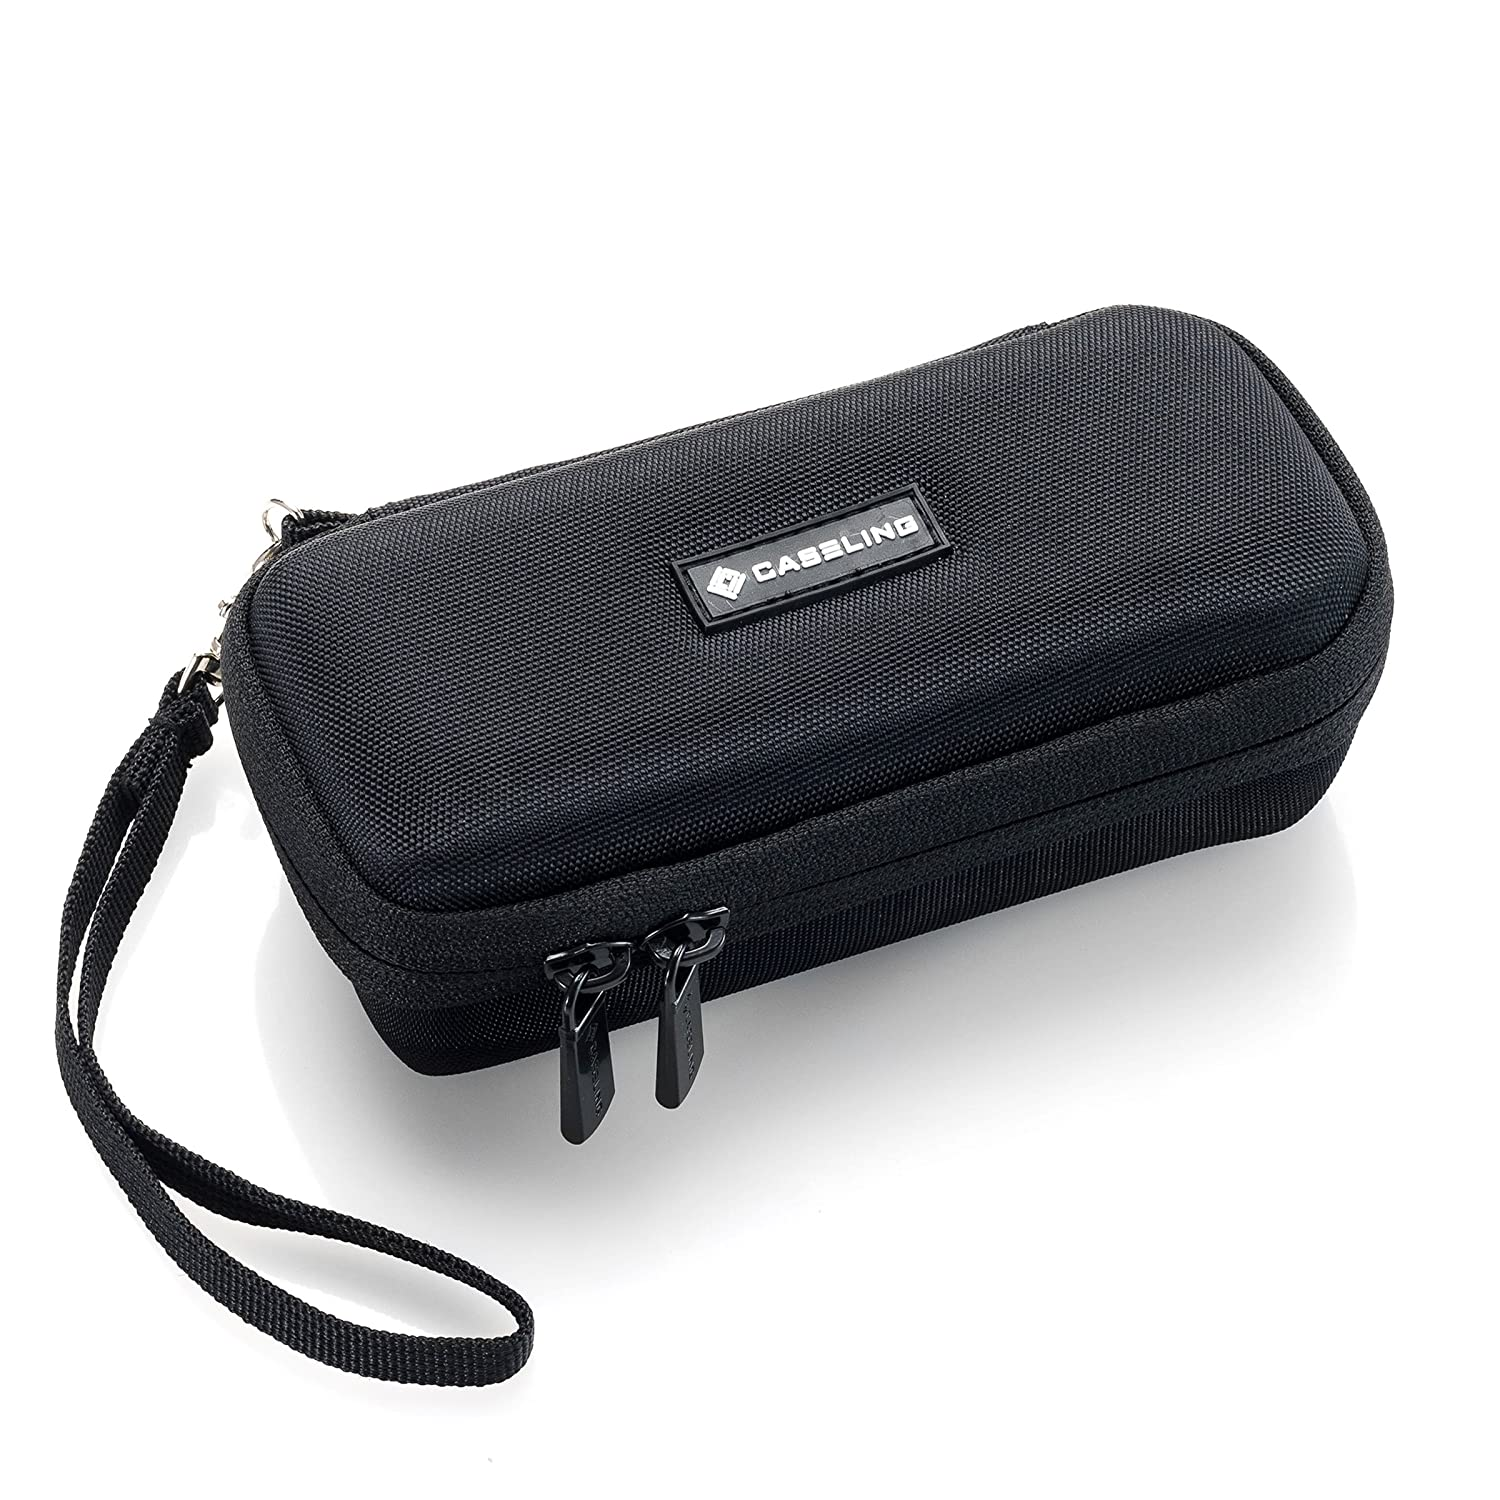 Portable Digital Recorder Hard CASE fits TASCAM DR-05 Version 2//1 by Caseling - Includes Mesh Pocket for Accessories